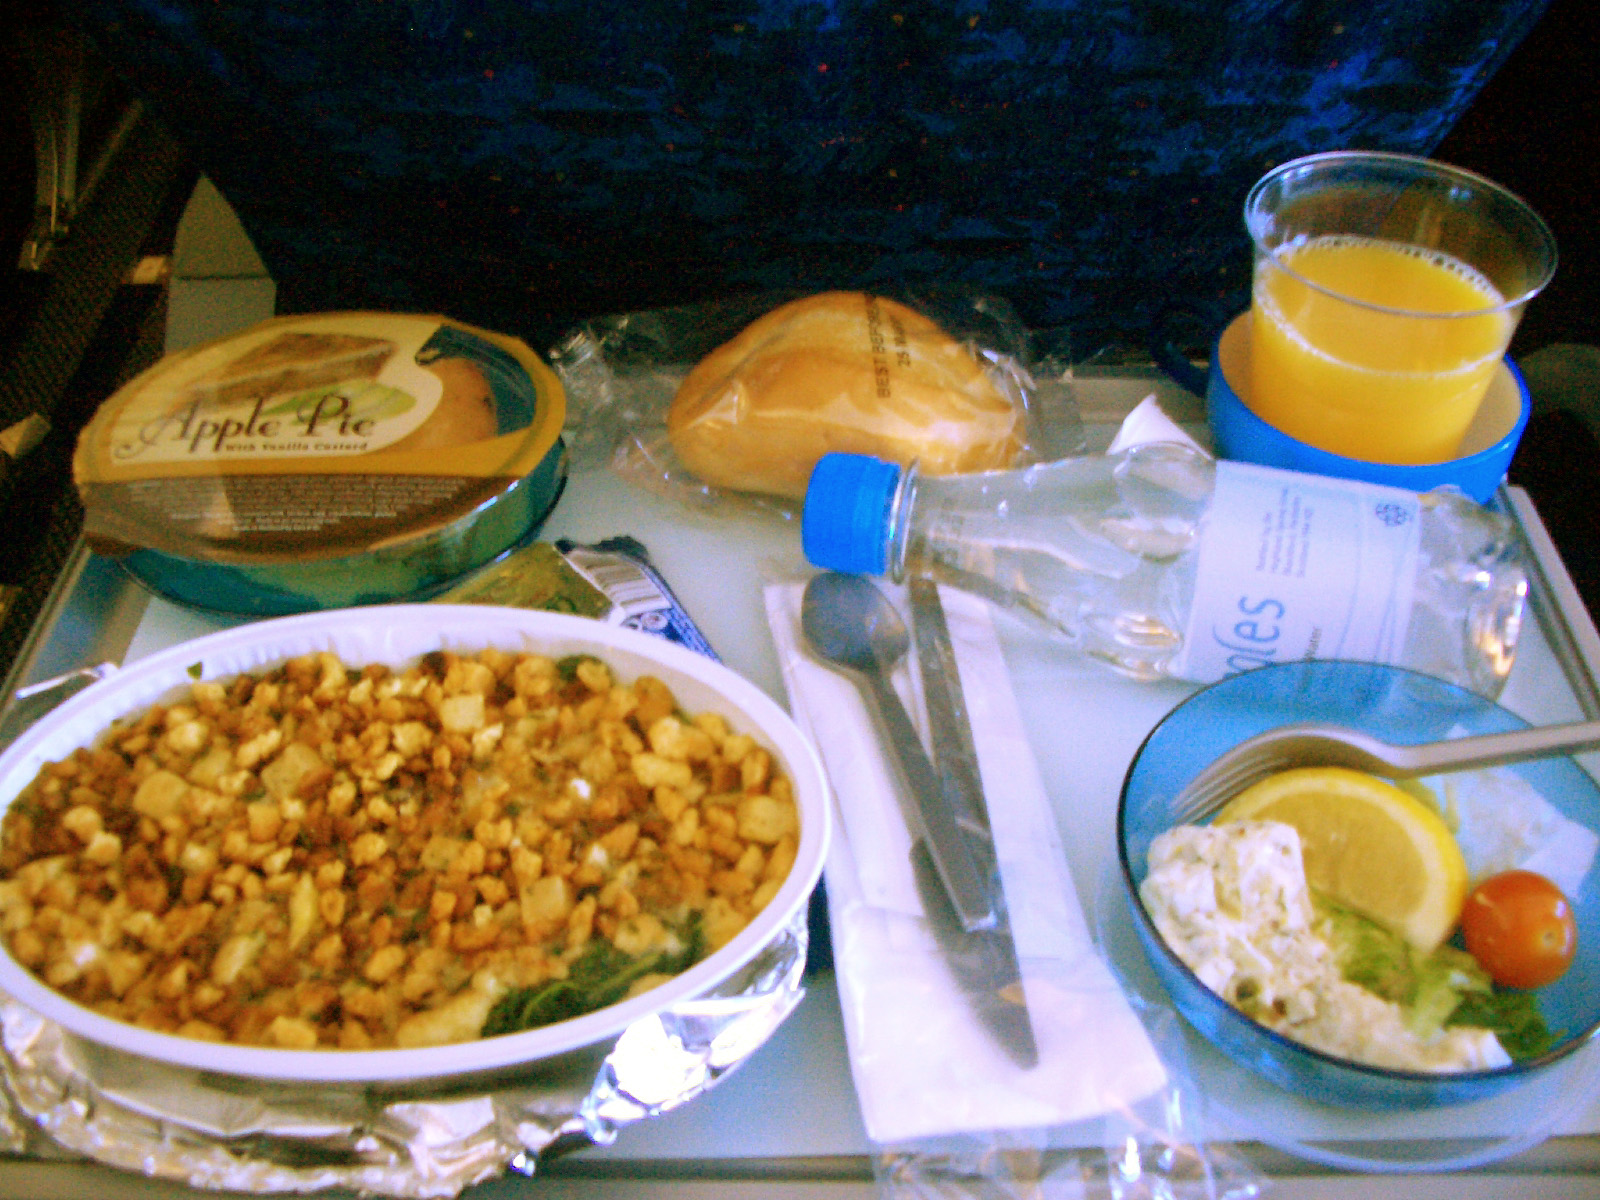 British Airways Inflight Food Menu